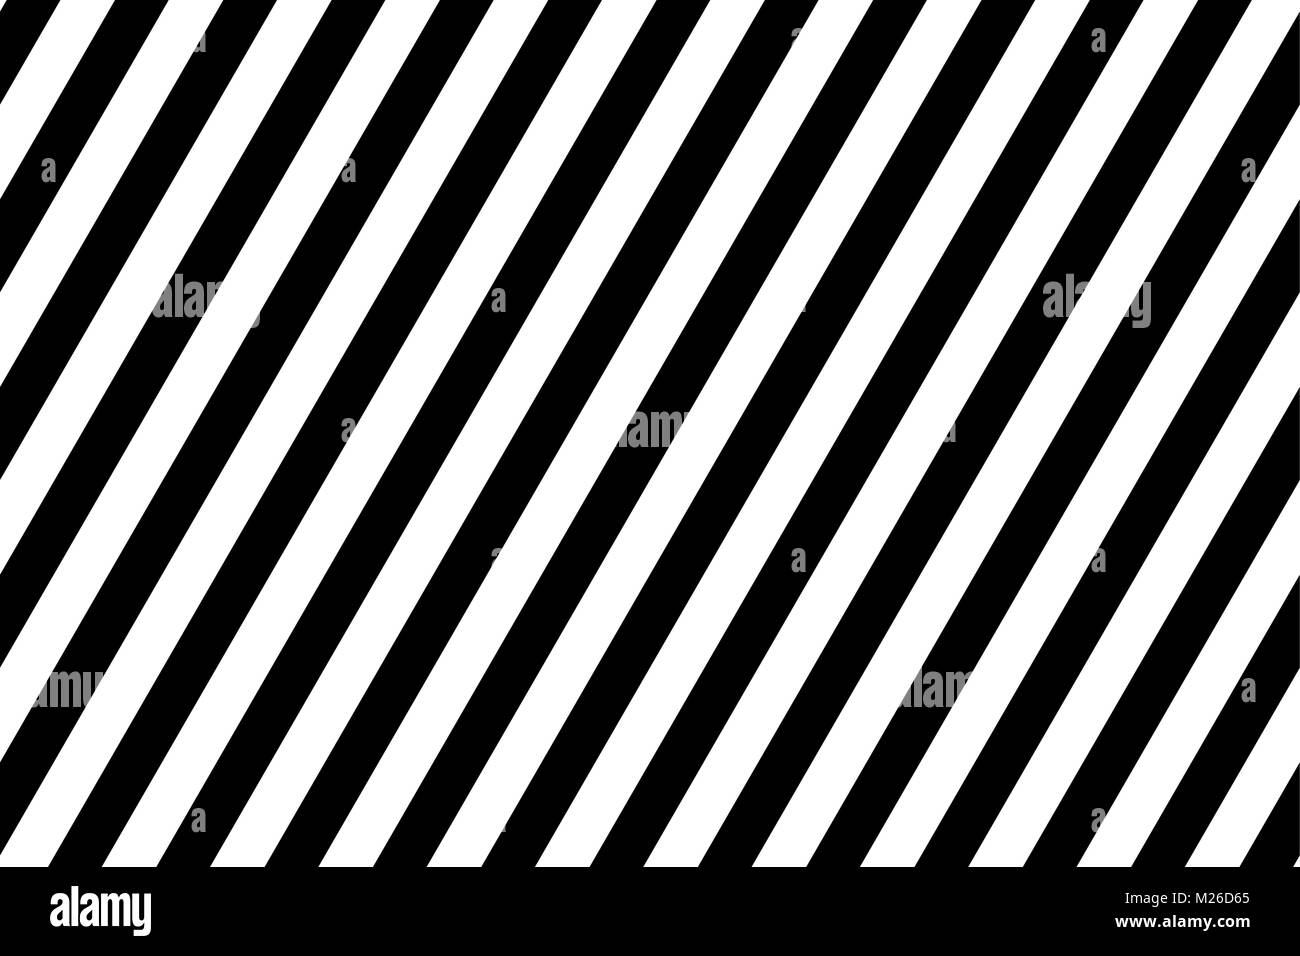 simple striped background black and white line pattern stock